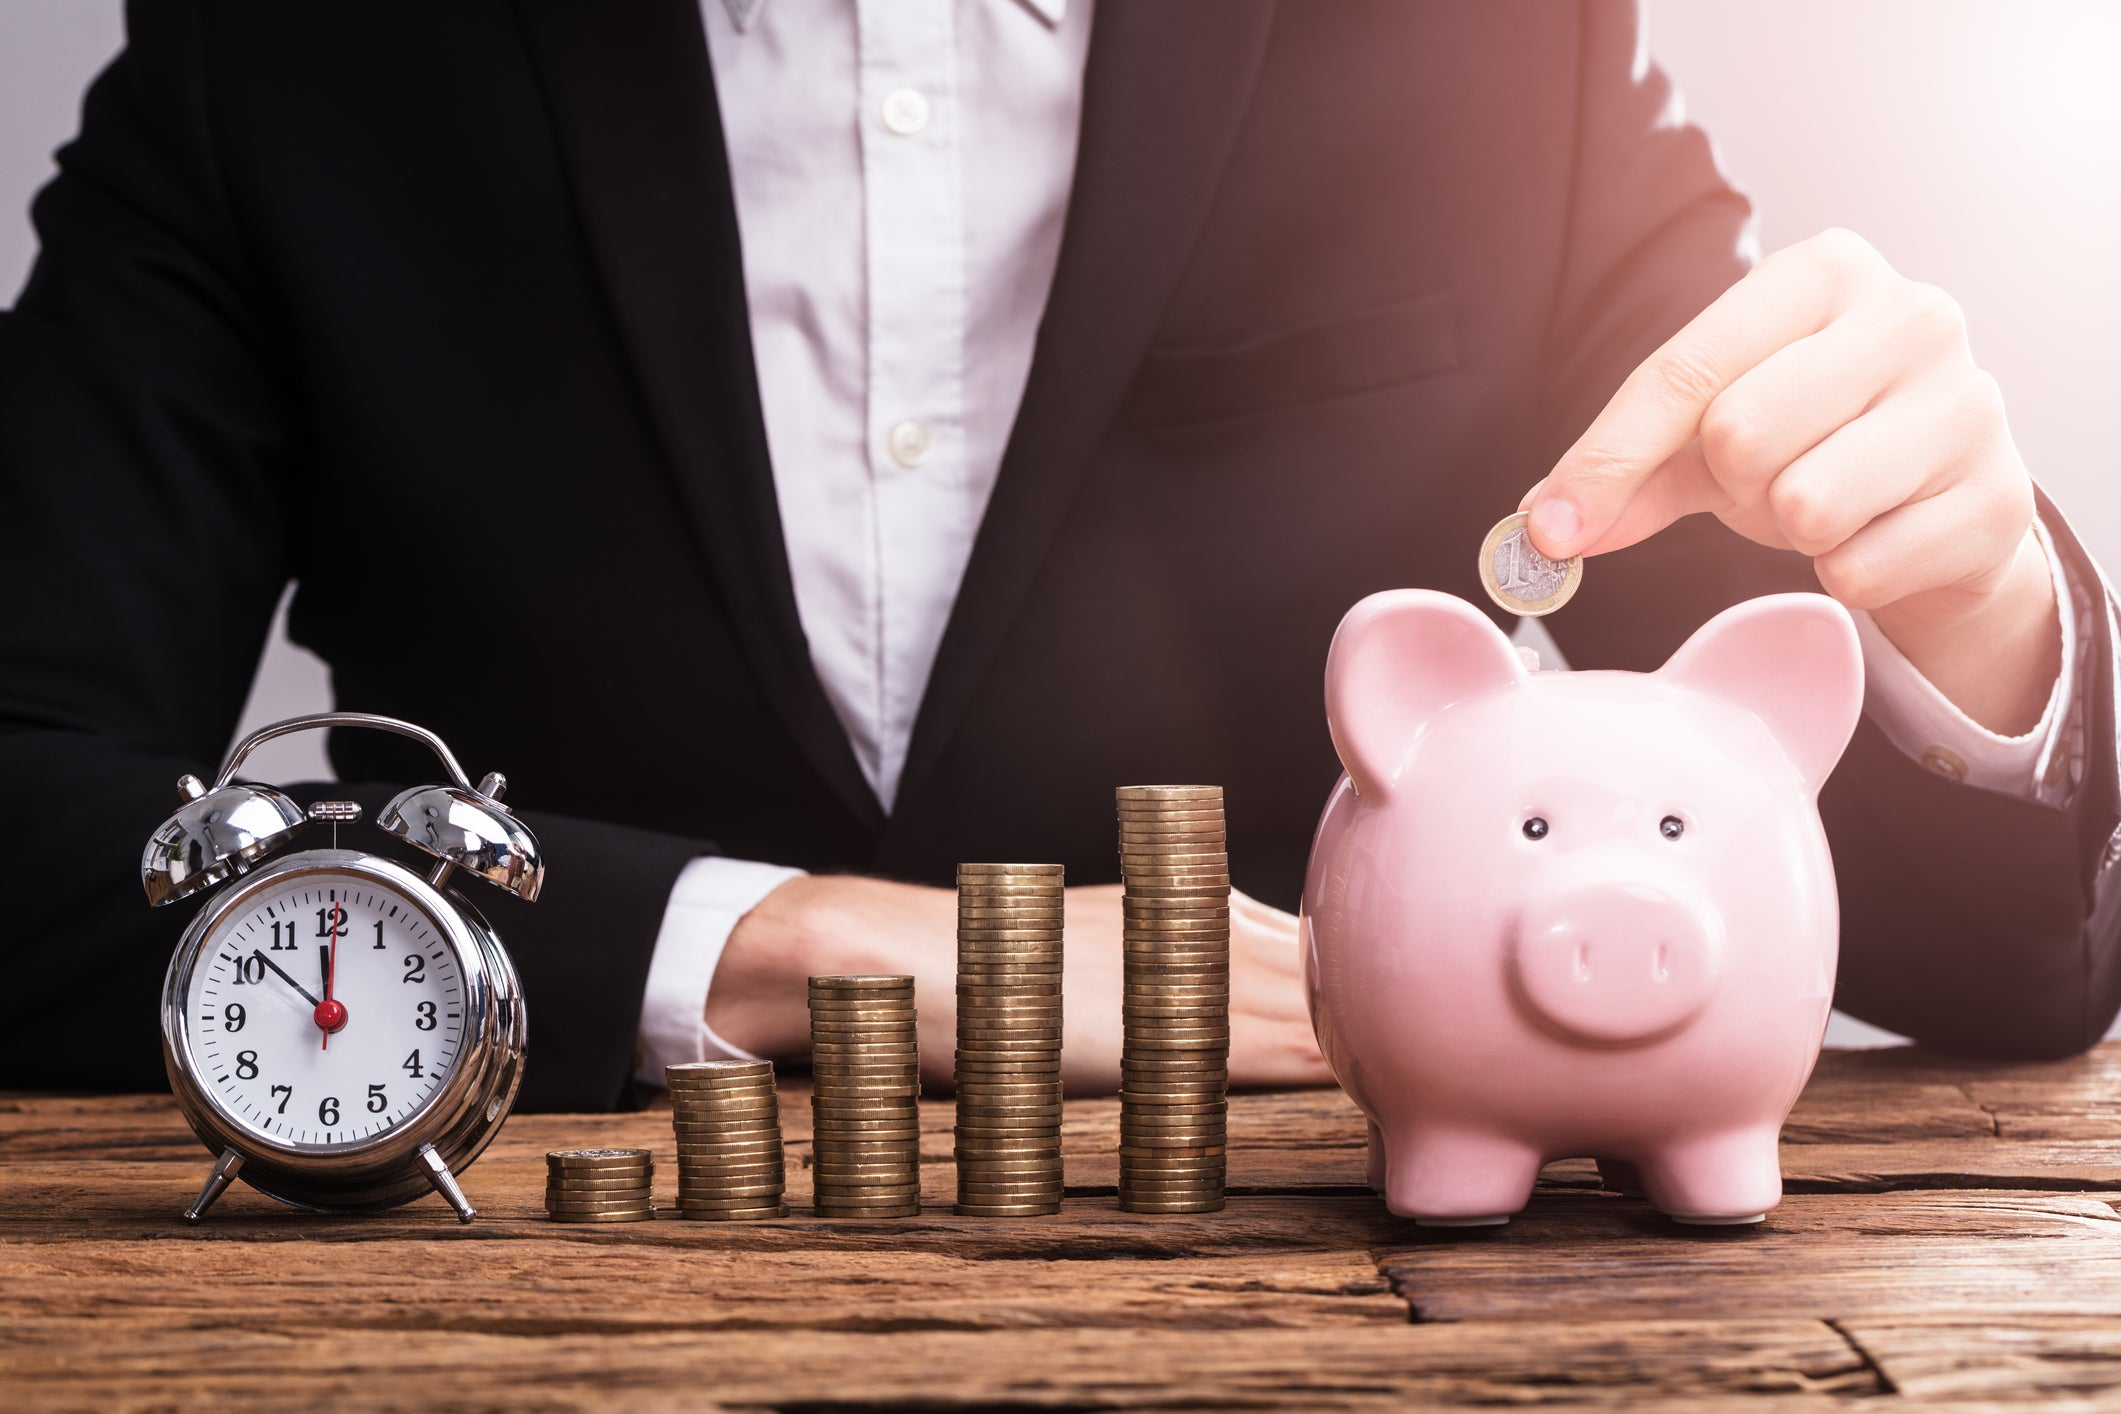 A person in a suit putting coins into a piggy bank.